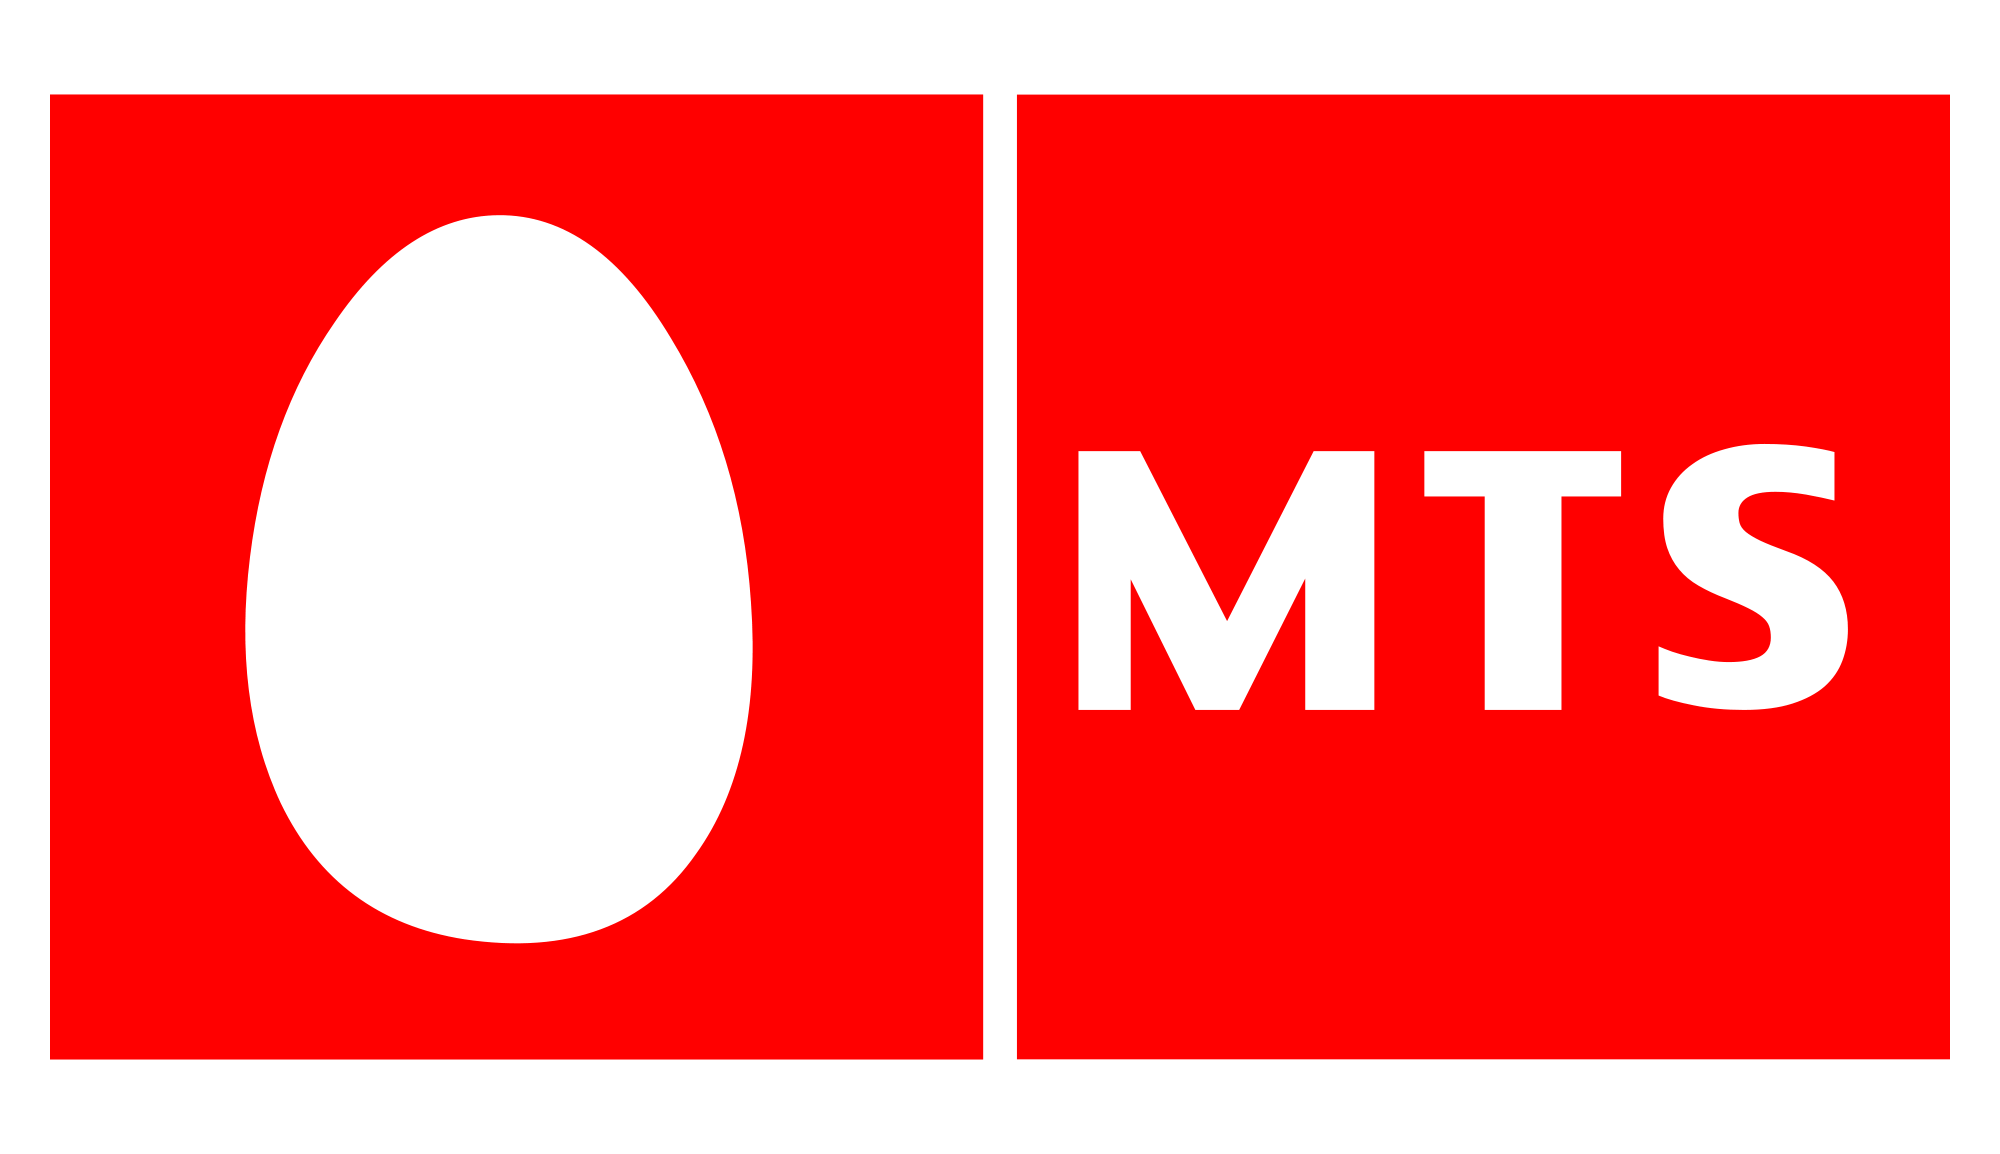 mts.png